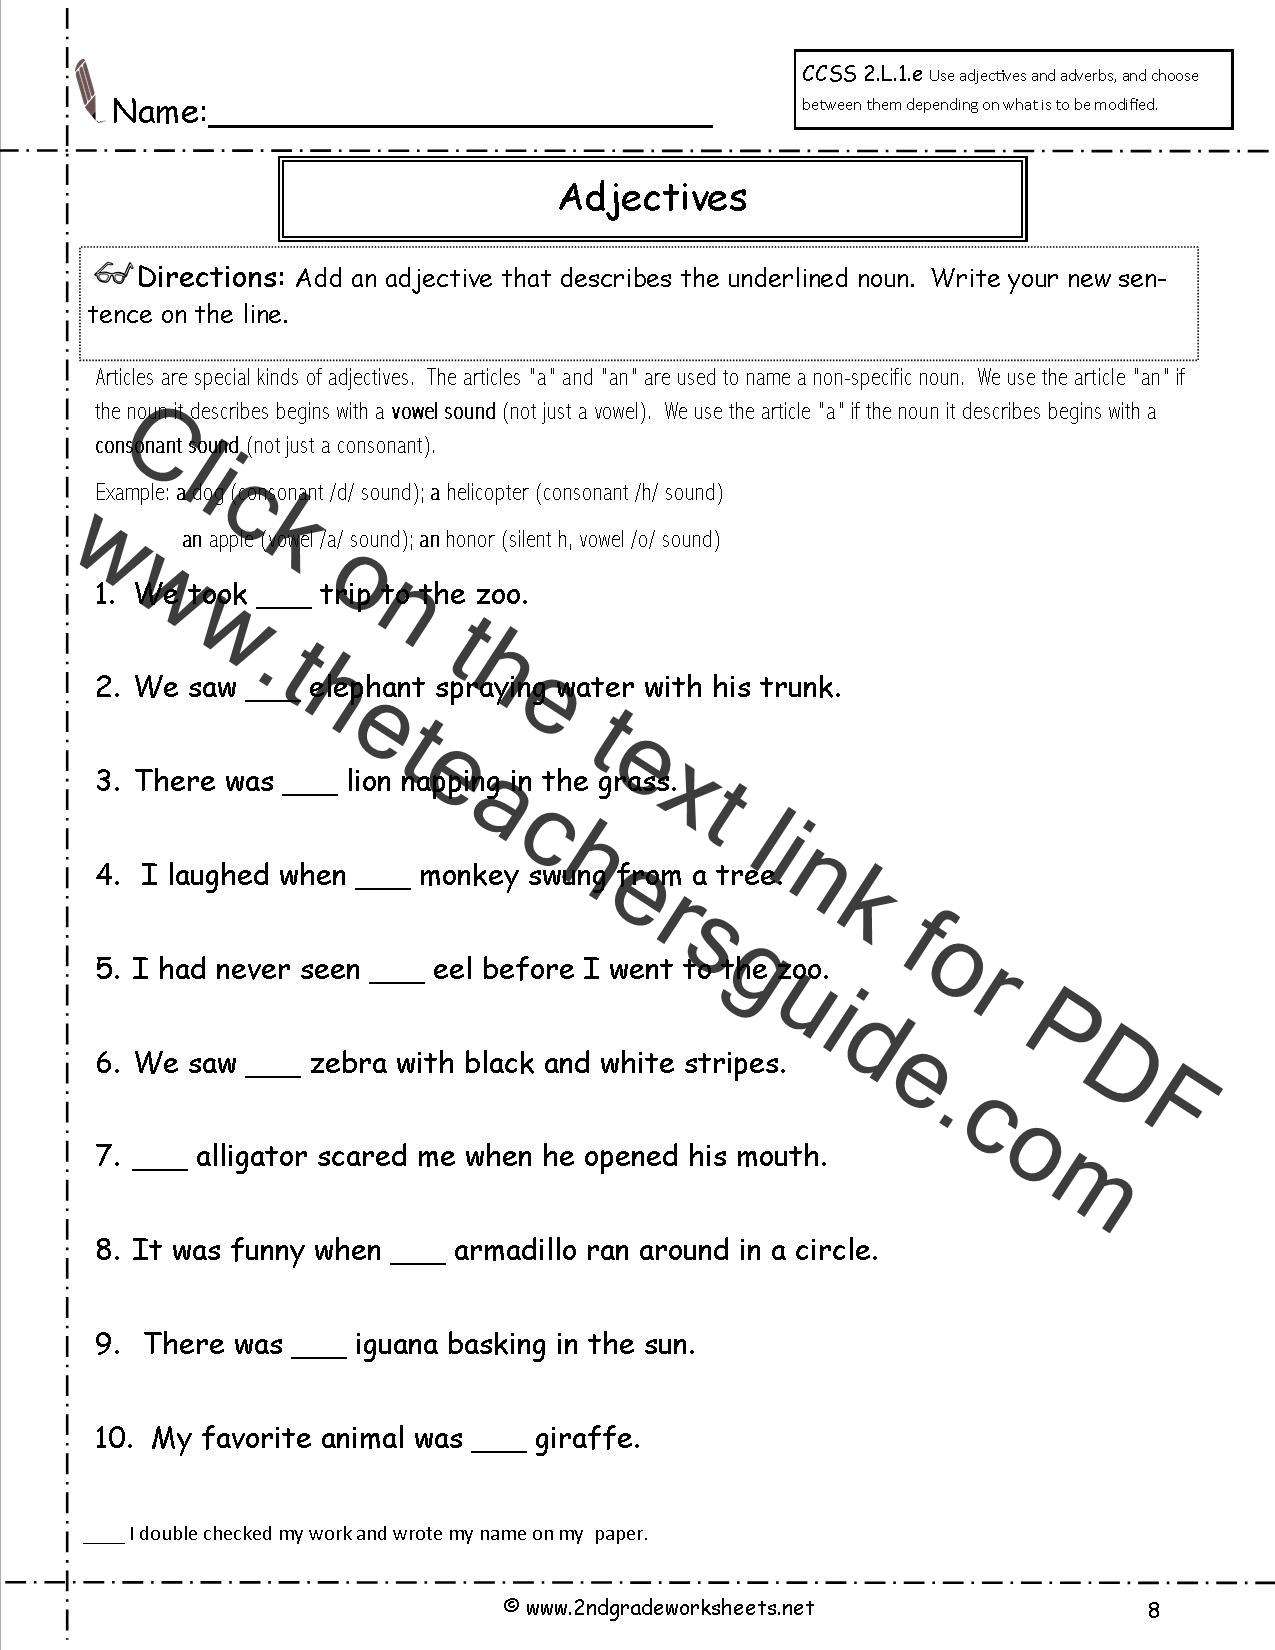 Worksheets Grammar Worksheets 2nd Grade free languagegrammar worksheets and printouts adjectives worksheets